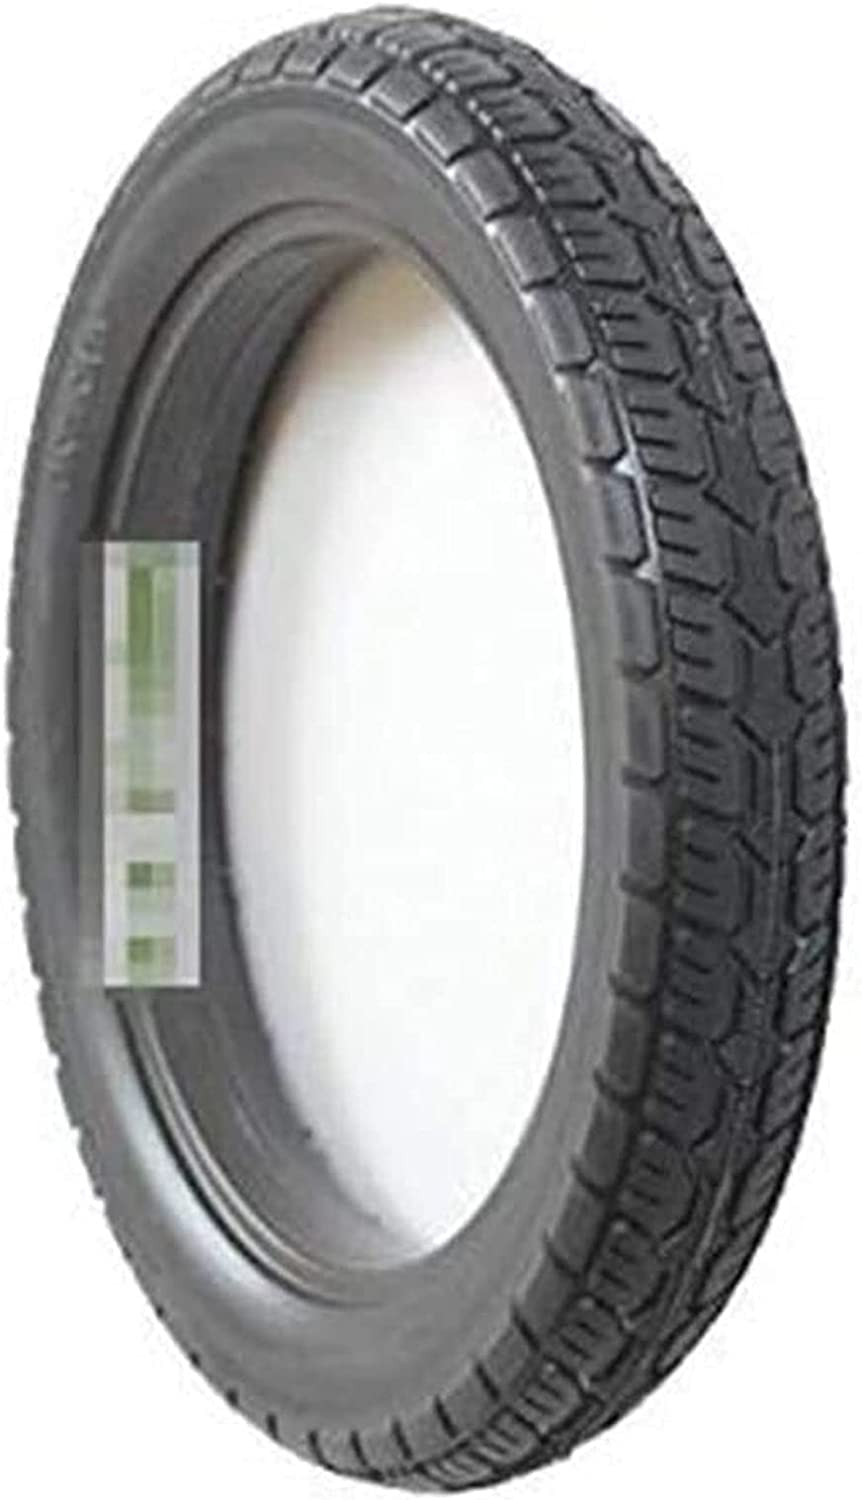 HAOKTSB Electric Scooter Tires, 14x2.125 Explosion-Proof Solid T